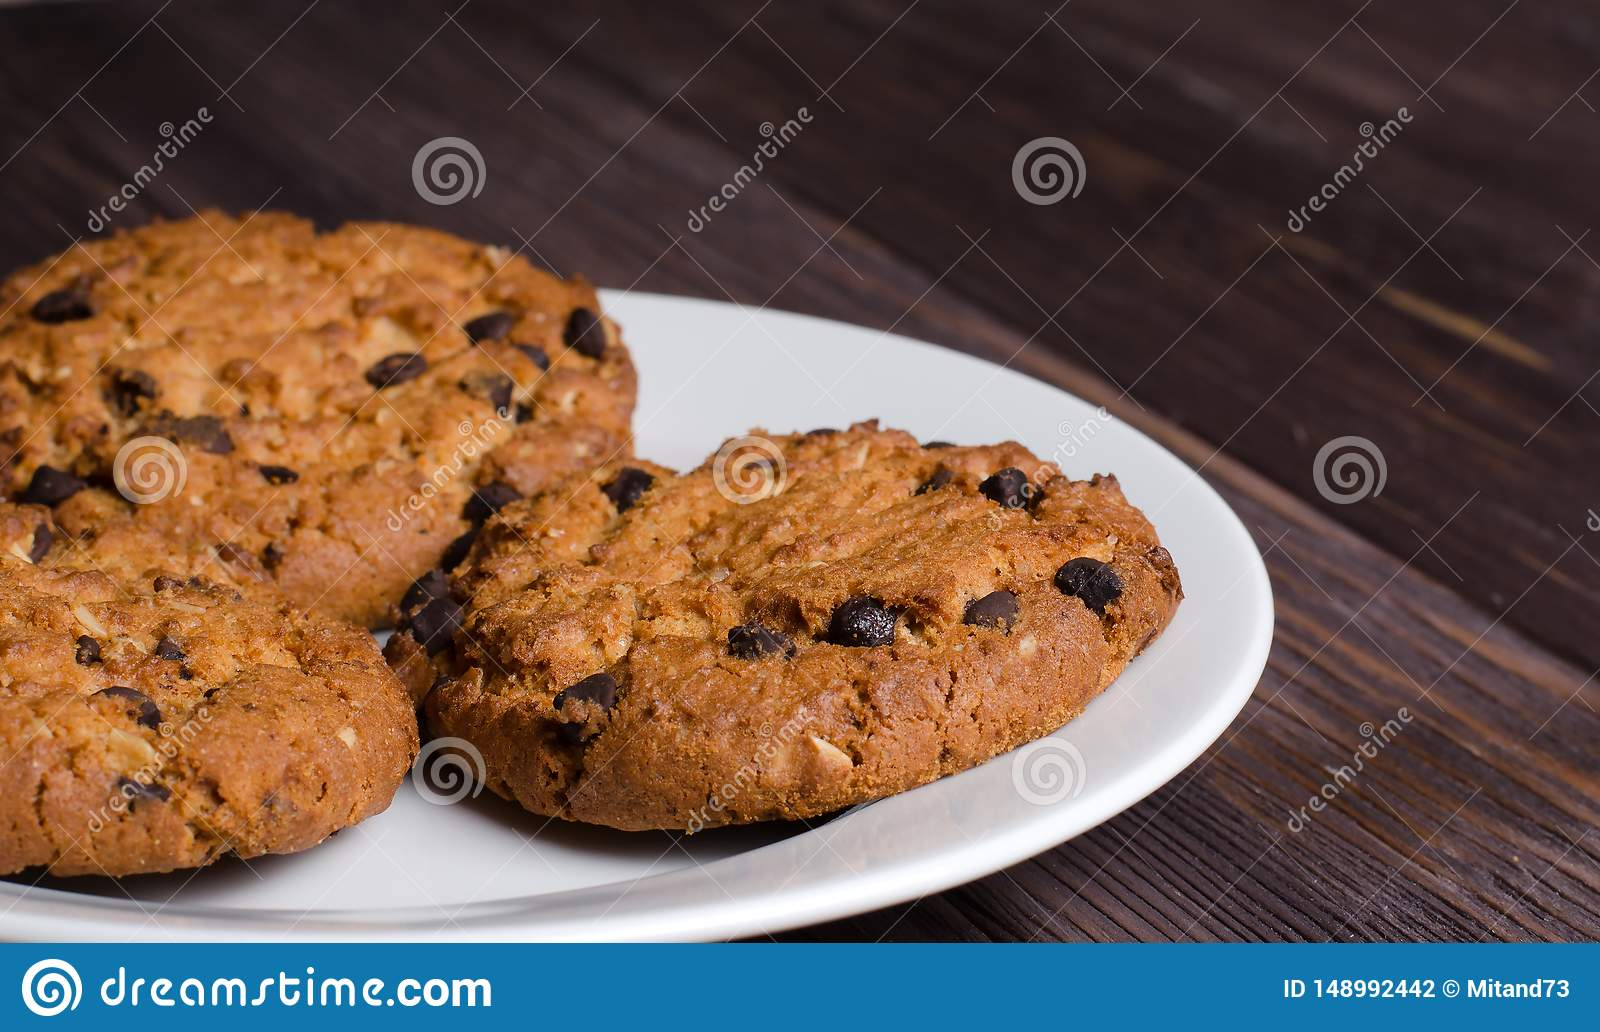 Homemade oatmeal cookies on a white plate. Wooden background